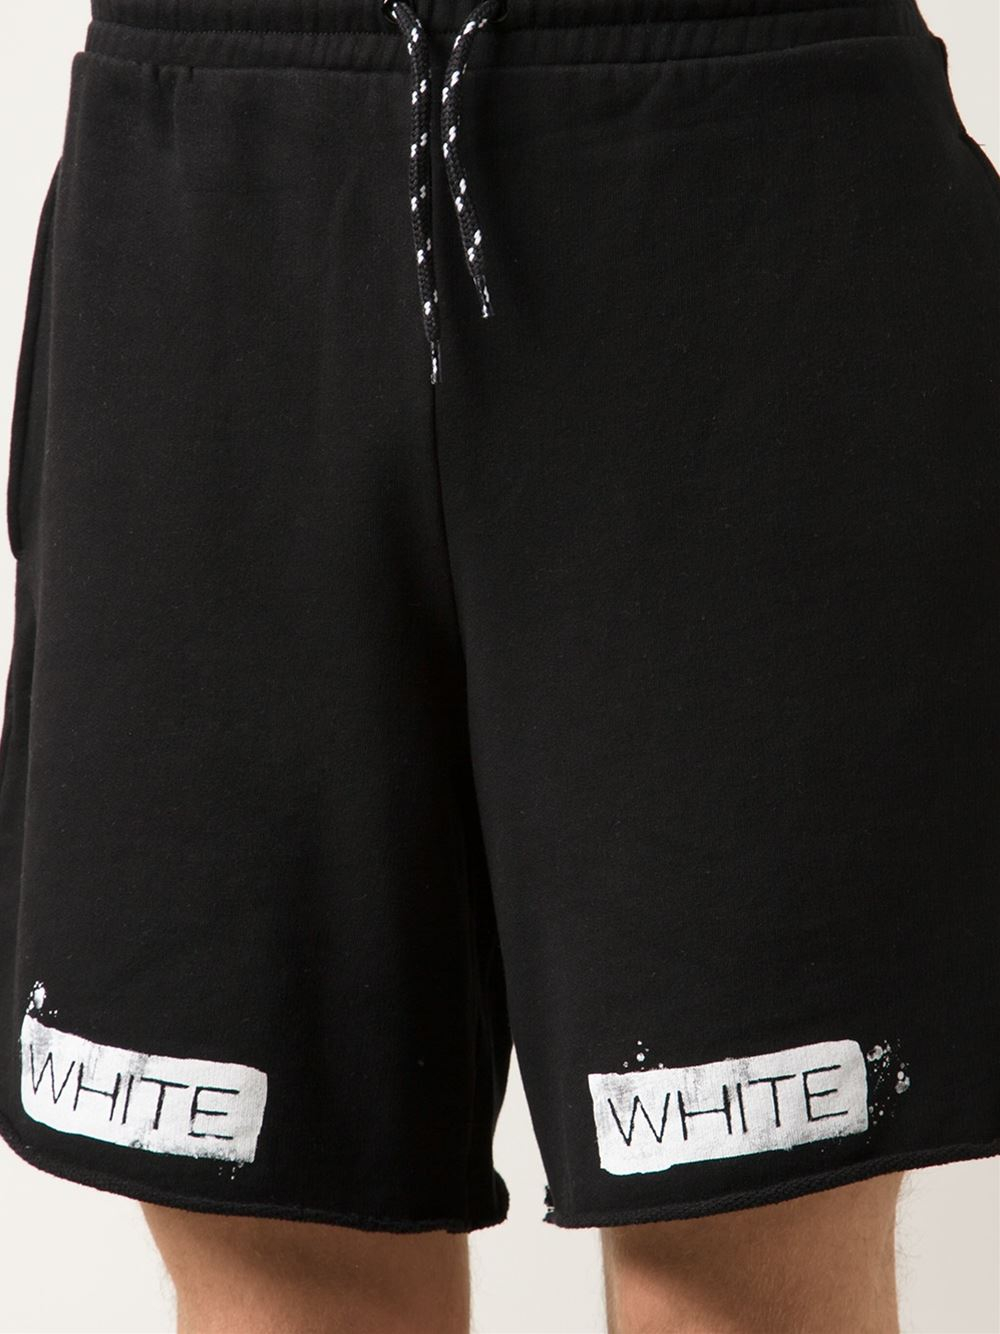 Off-white c/o virgil abloh Striped Cotton Shorts in Black ...